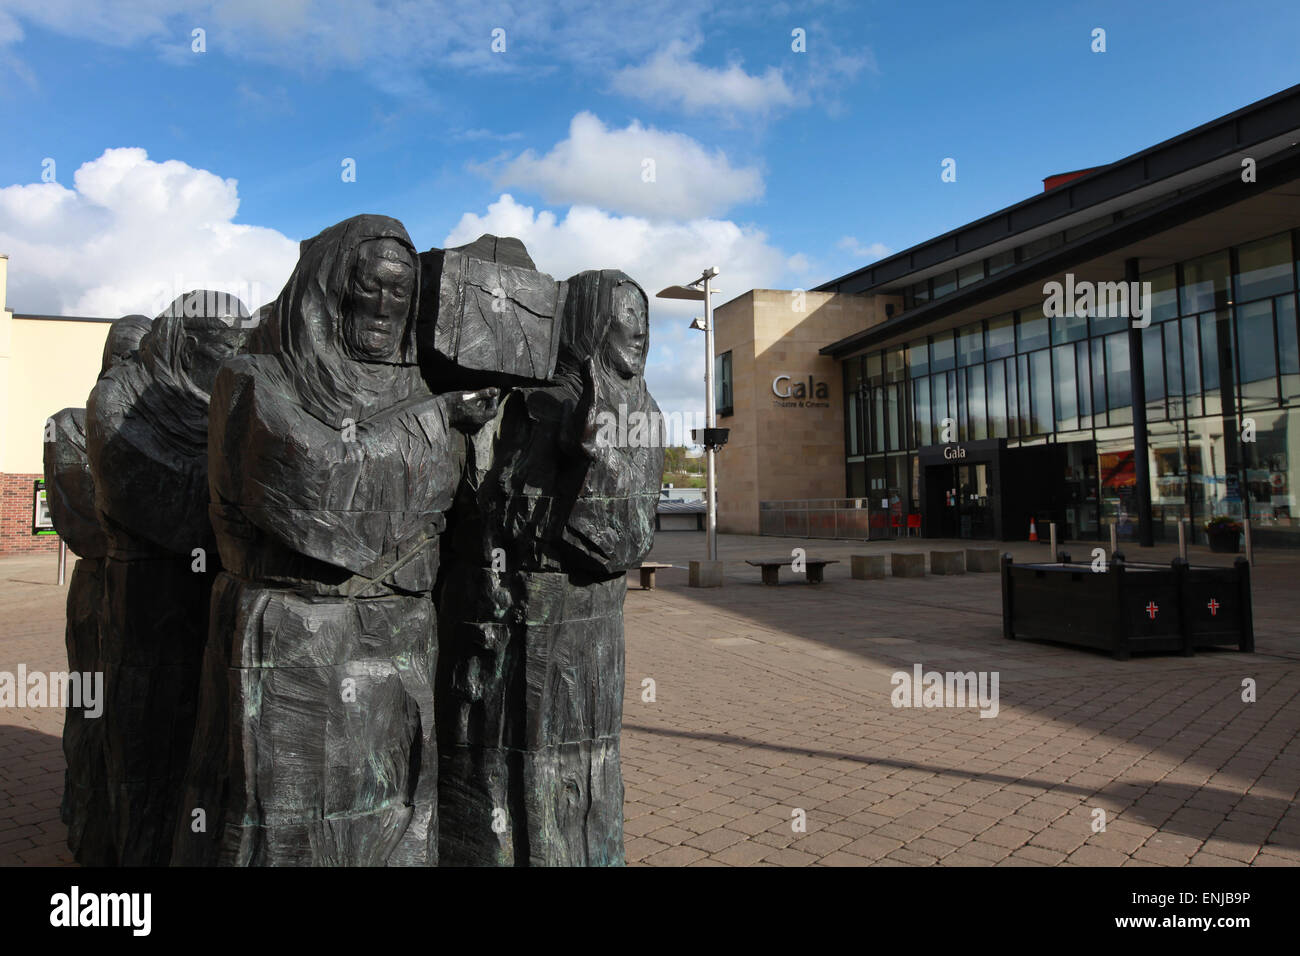 The Journey sculpture by Fenwick Lawson, monks carriyng the coffin of St Cuthbert,  in Millennium Place in Durham - Stock Image